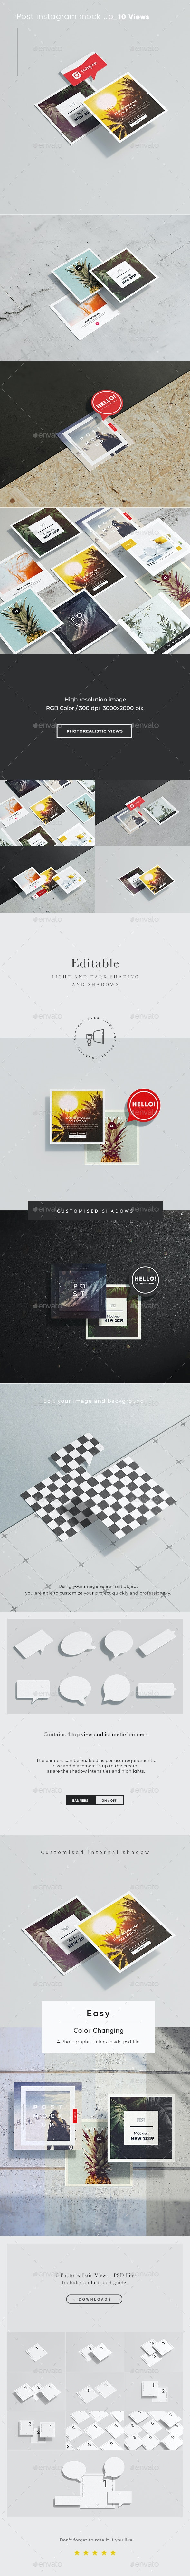 Post Instagram card mock up - Product Mock-Ups Graphics